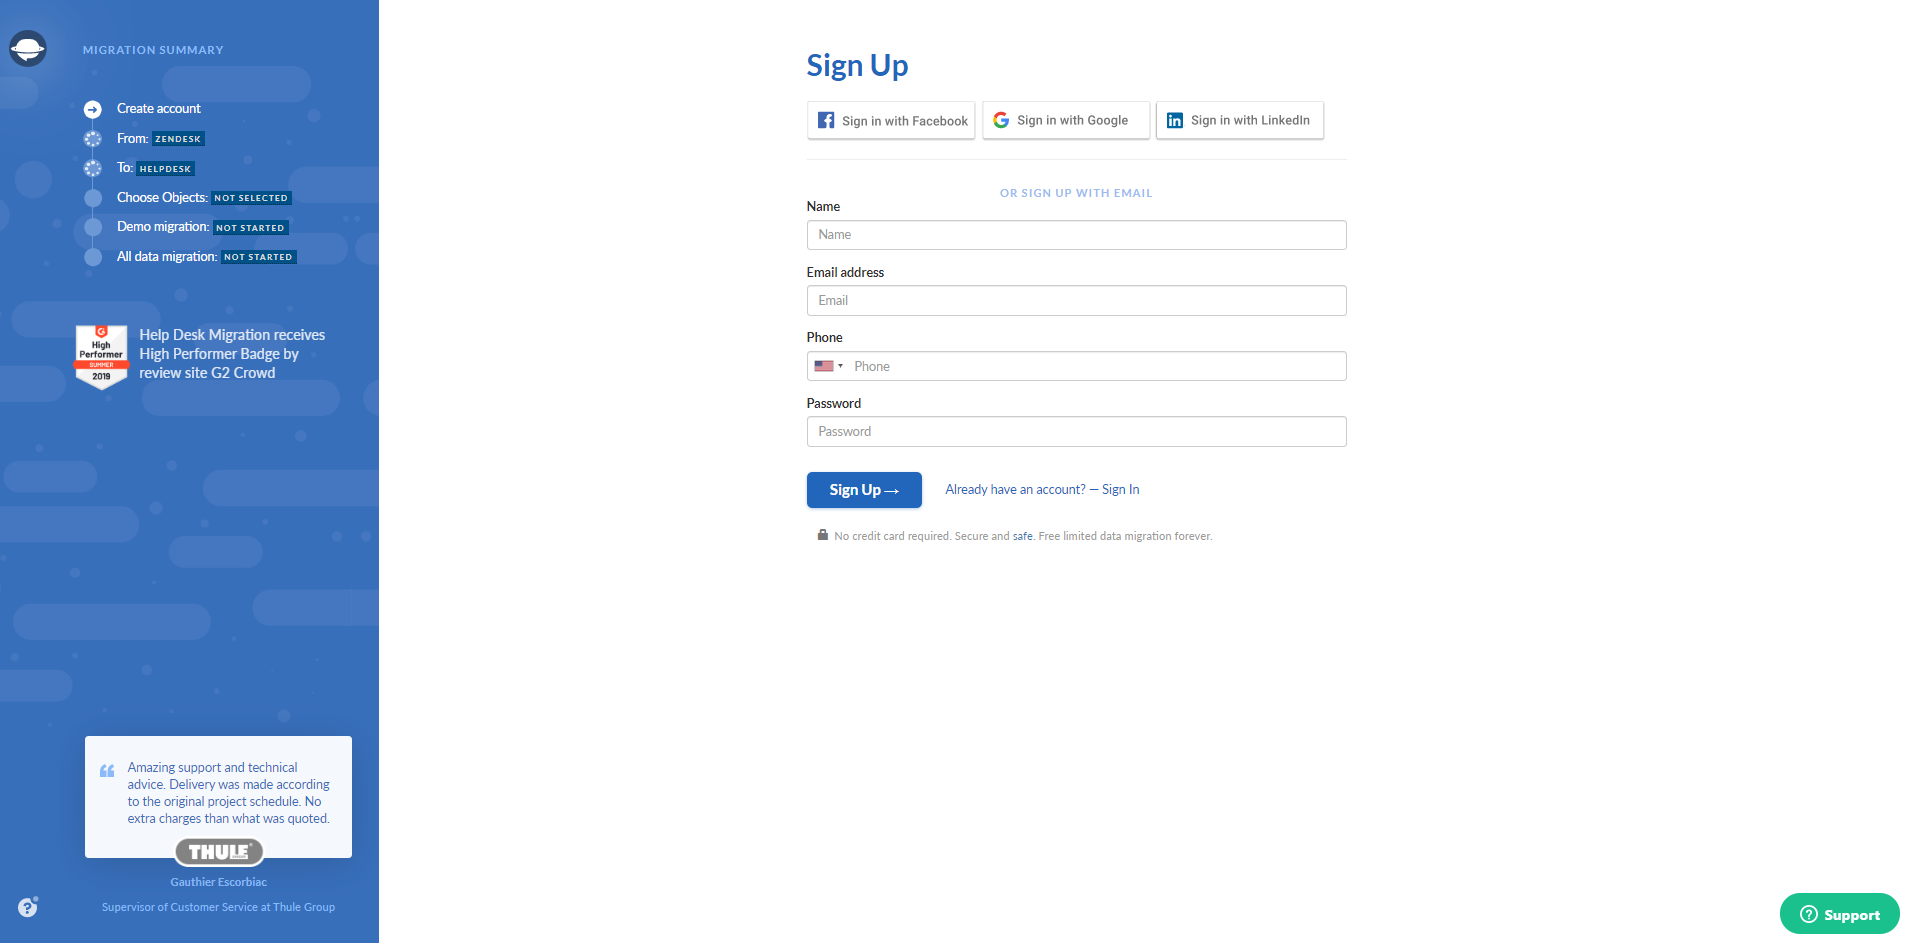 Sign up for Help Desk Migration service